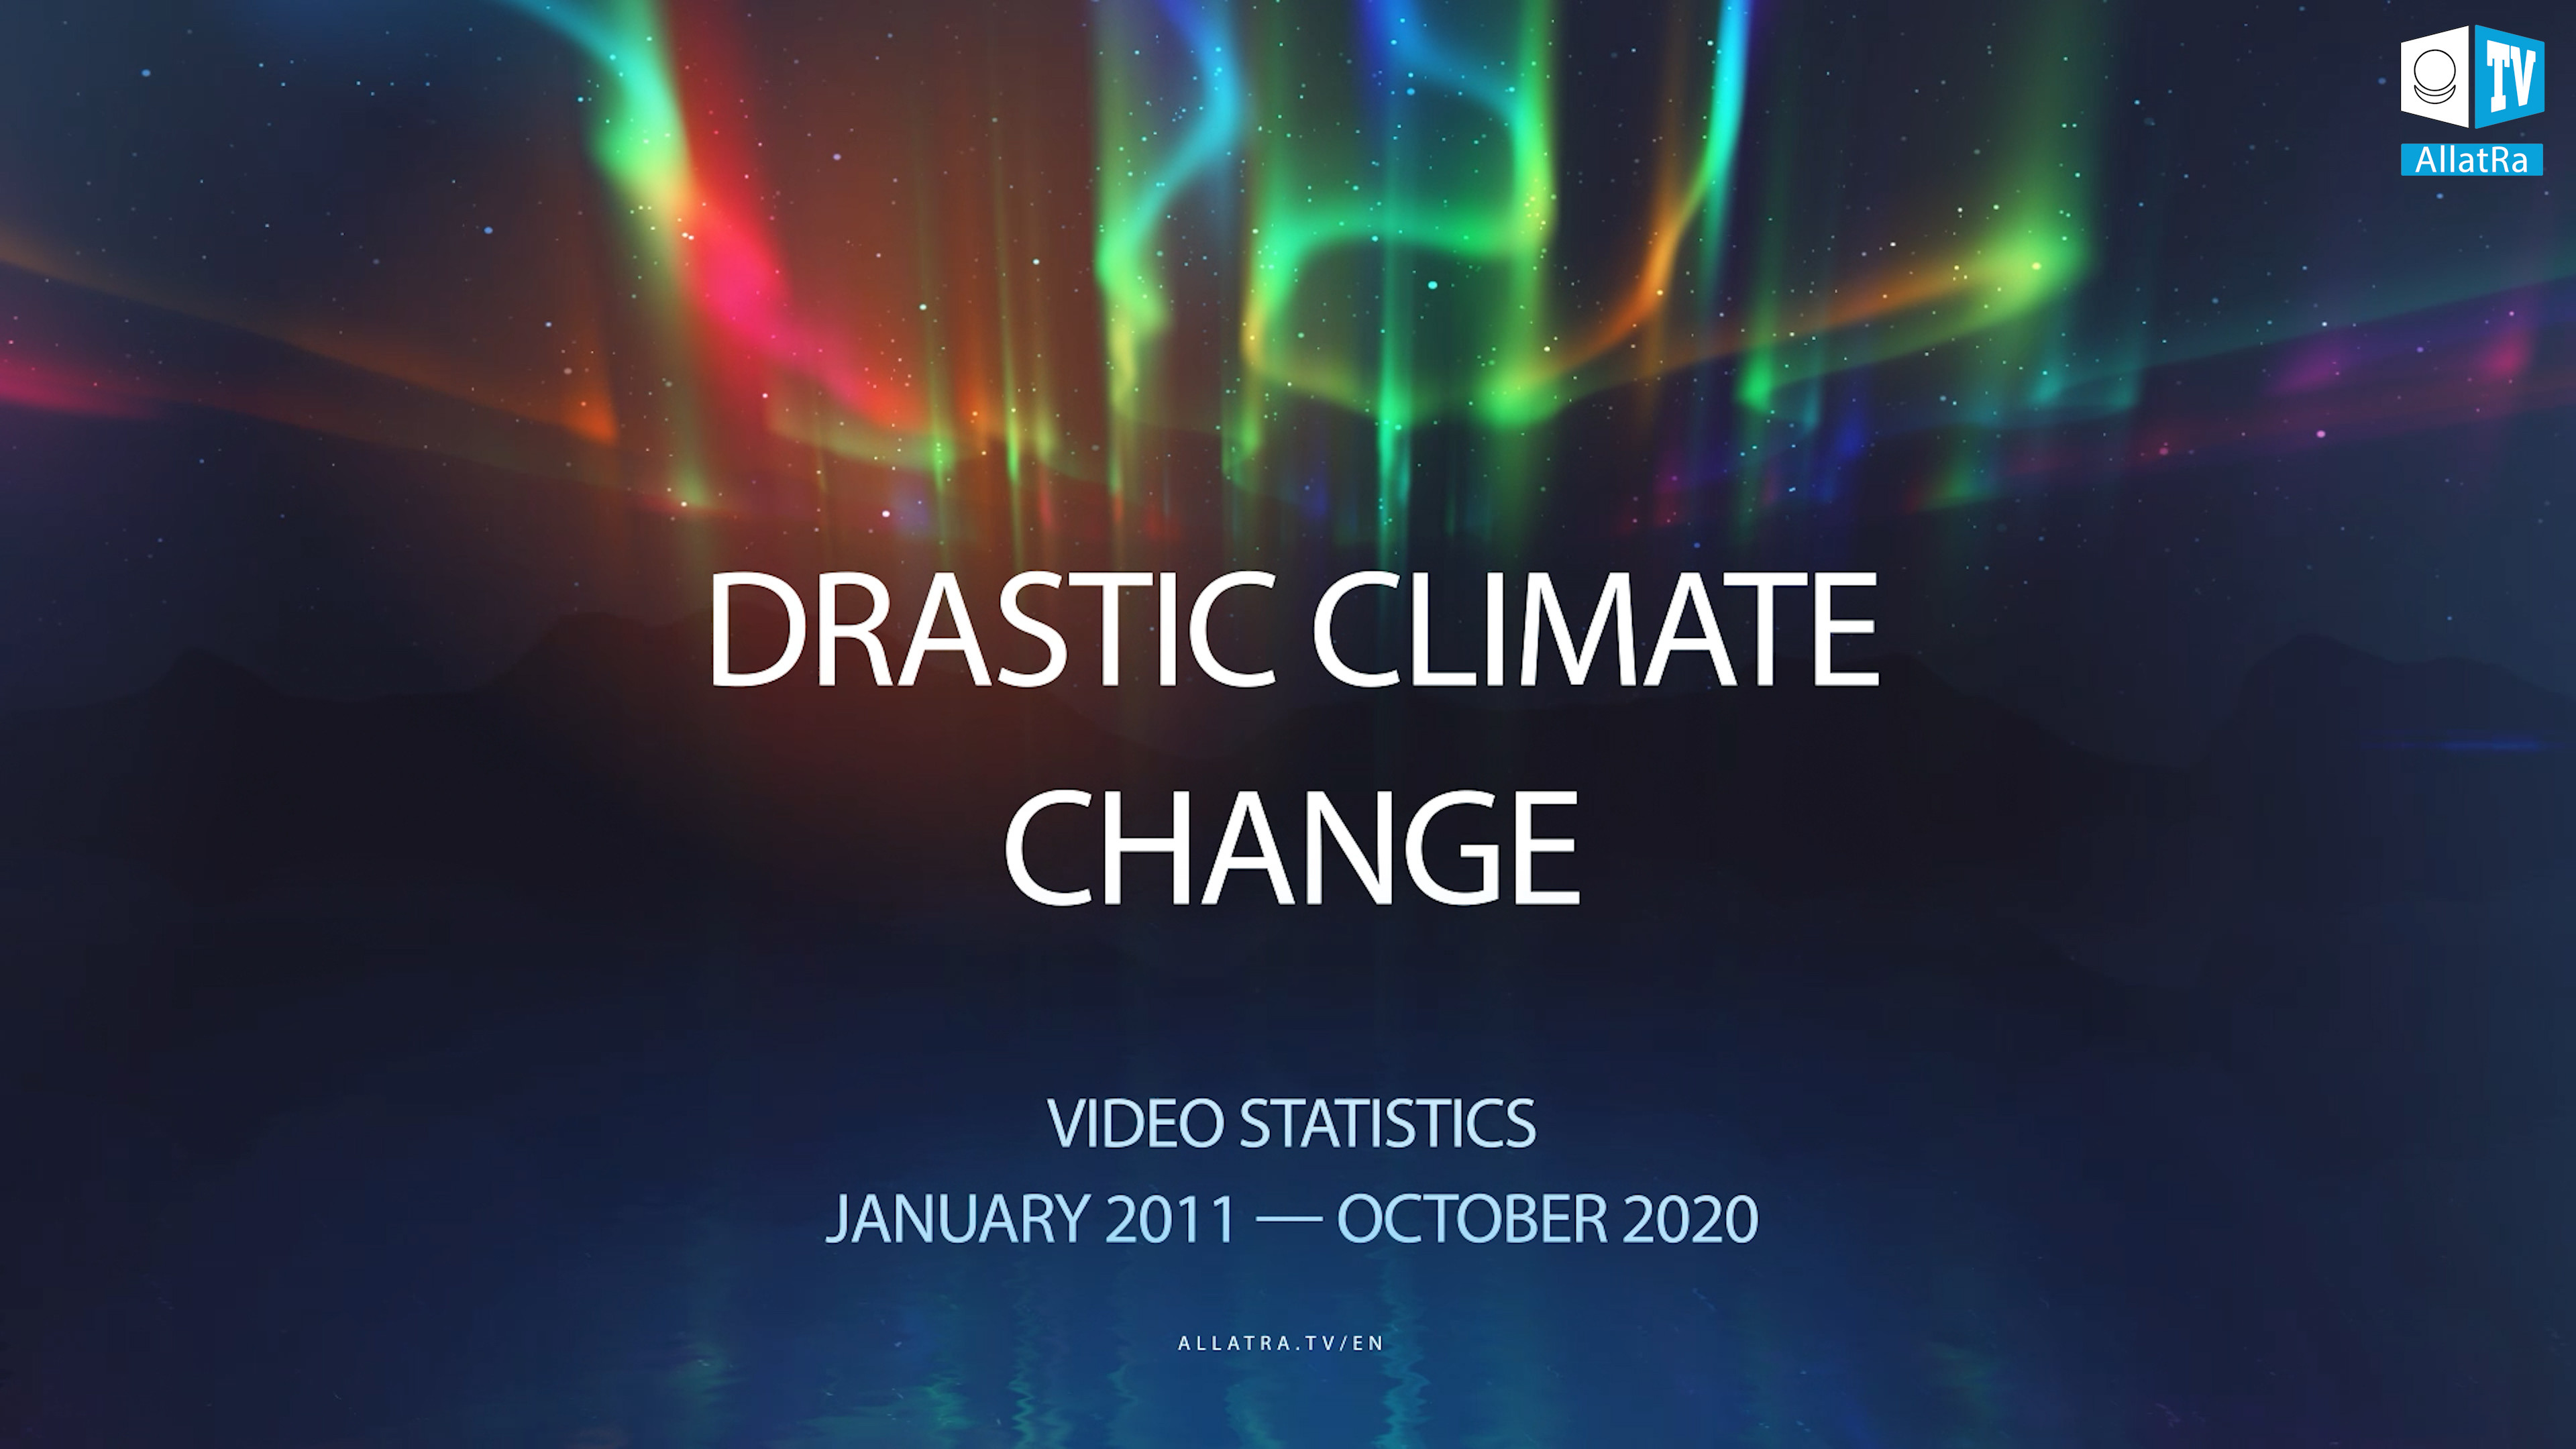 DRASTIC CLIMATE CHANGE. VIDEO STATISTICS. JANUARY 2011 - OCTOBER 2020